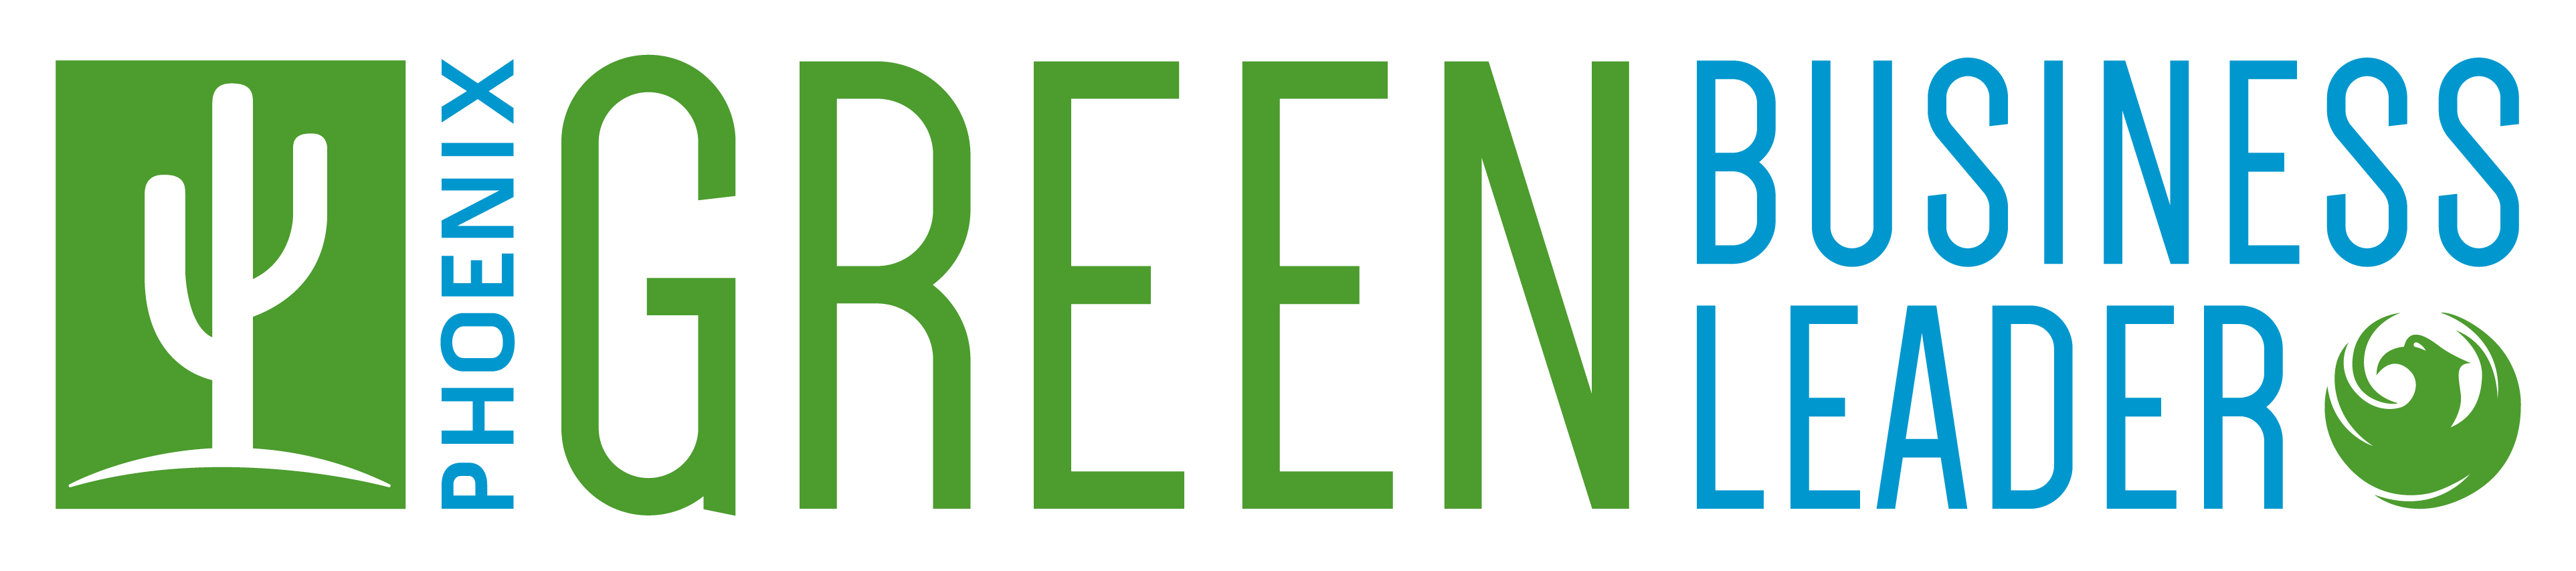 Green Business Leader logo